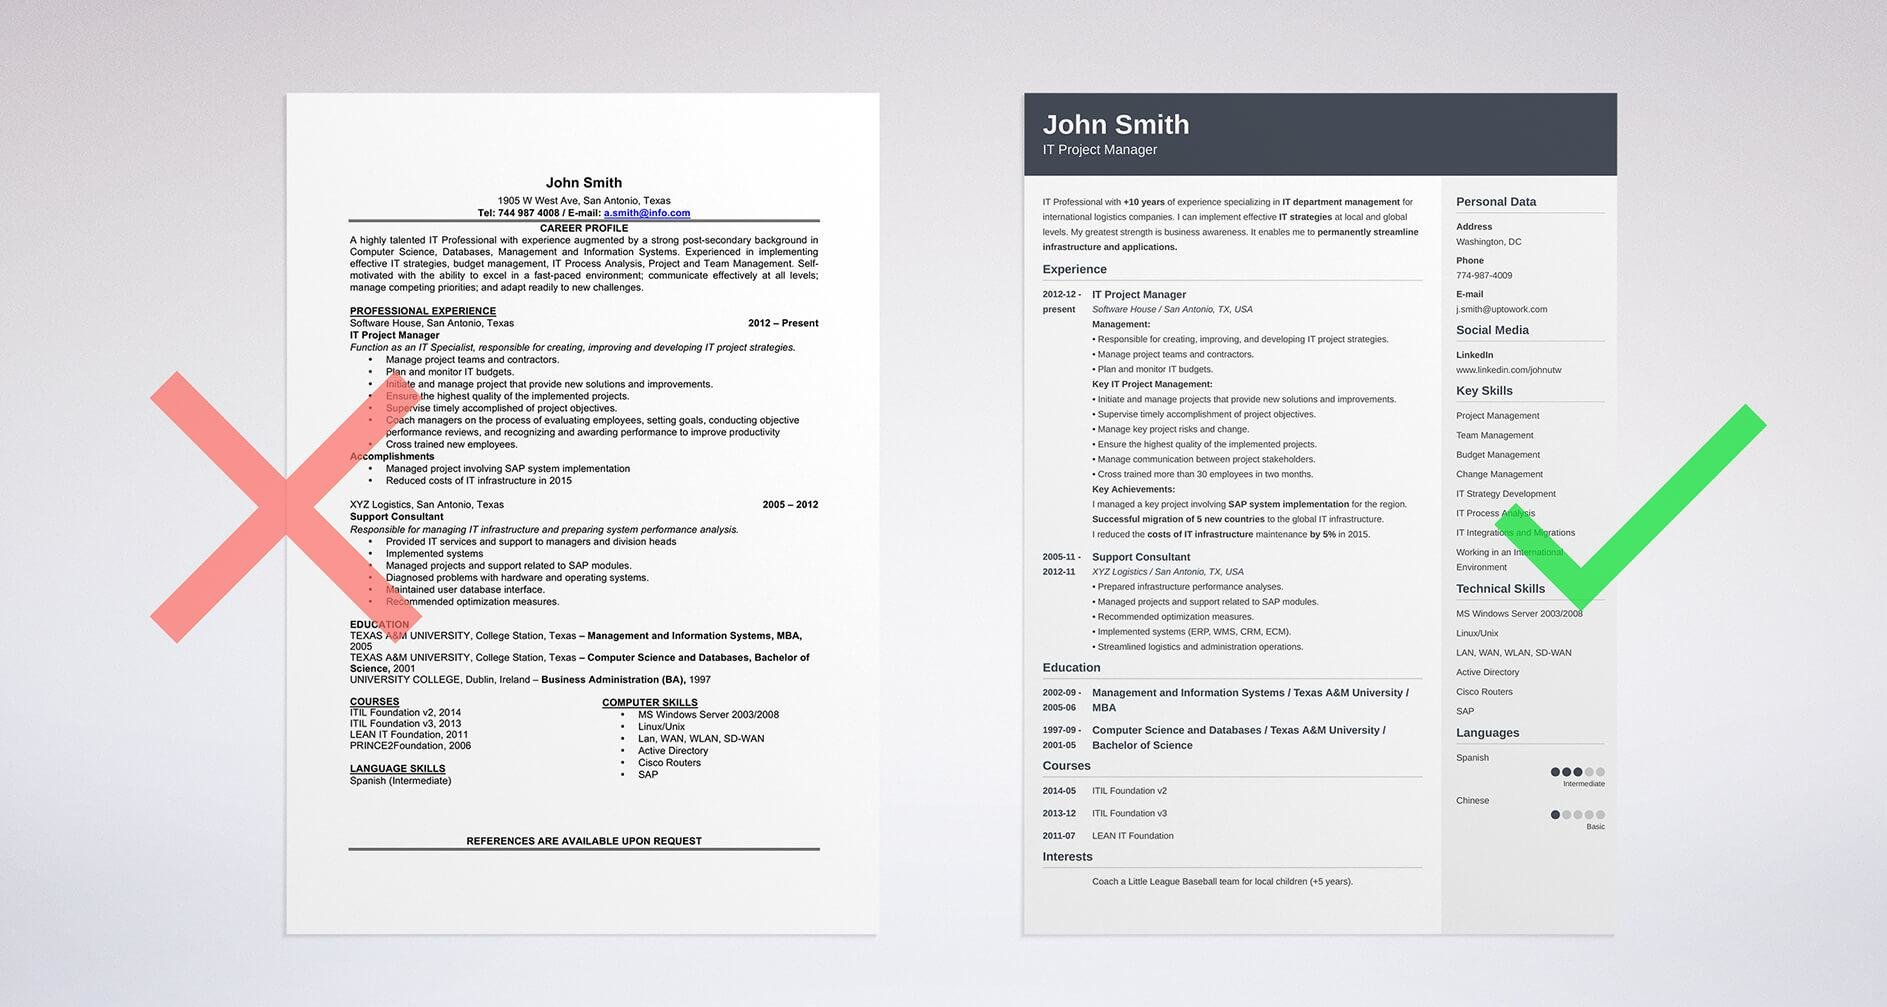 How To Email A Resume To Get More Jobs